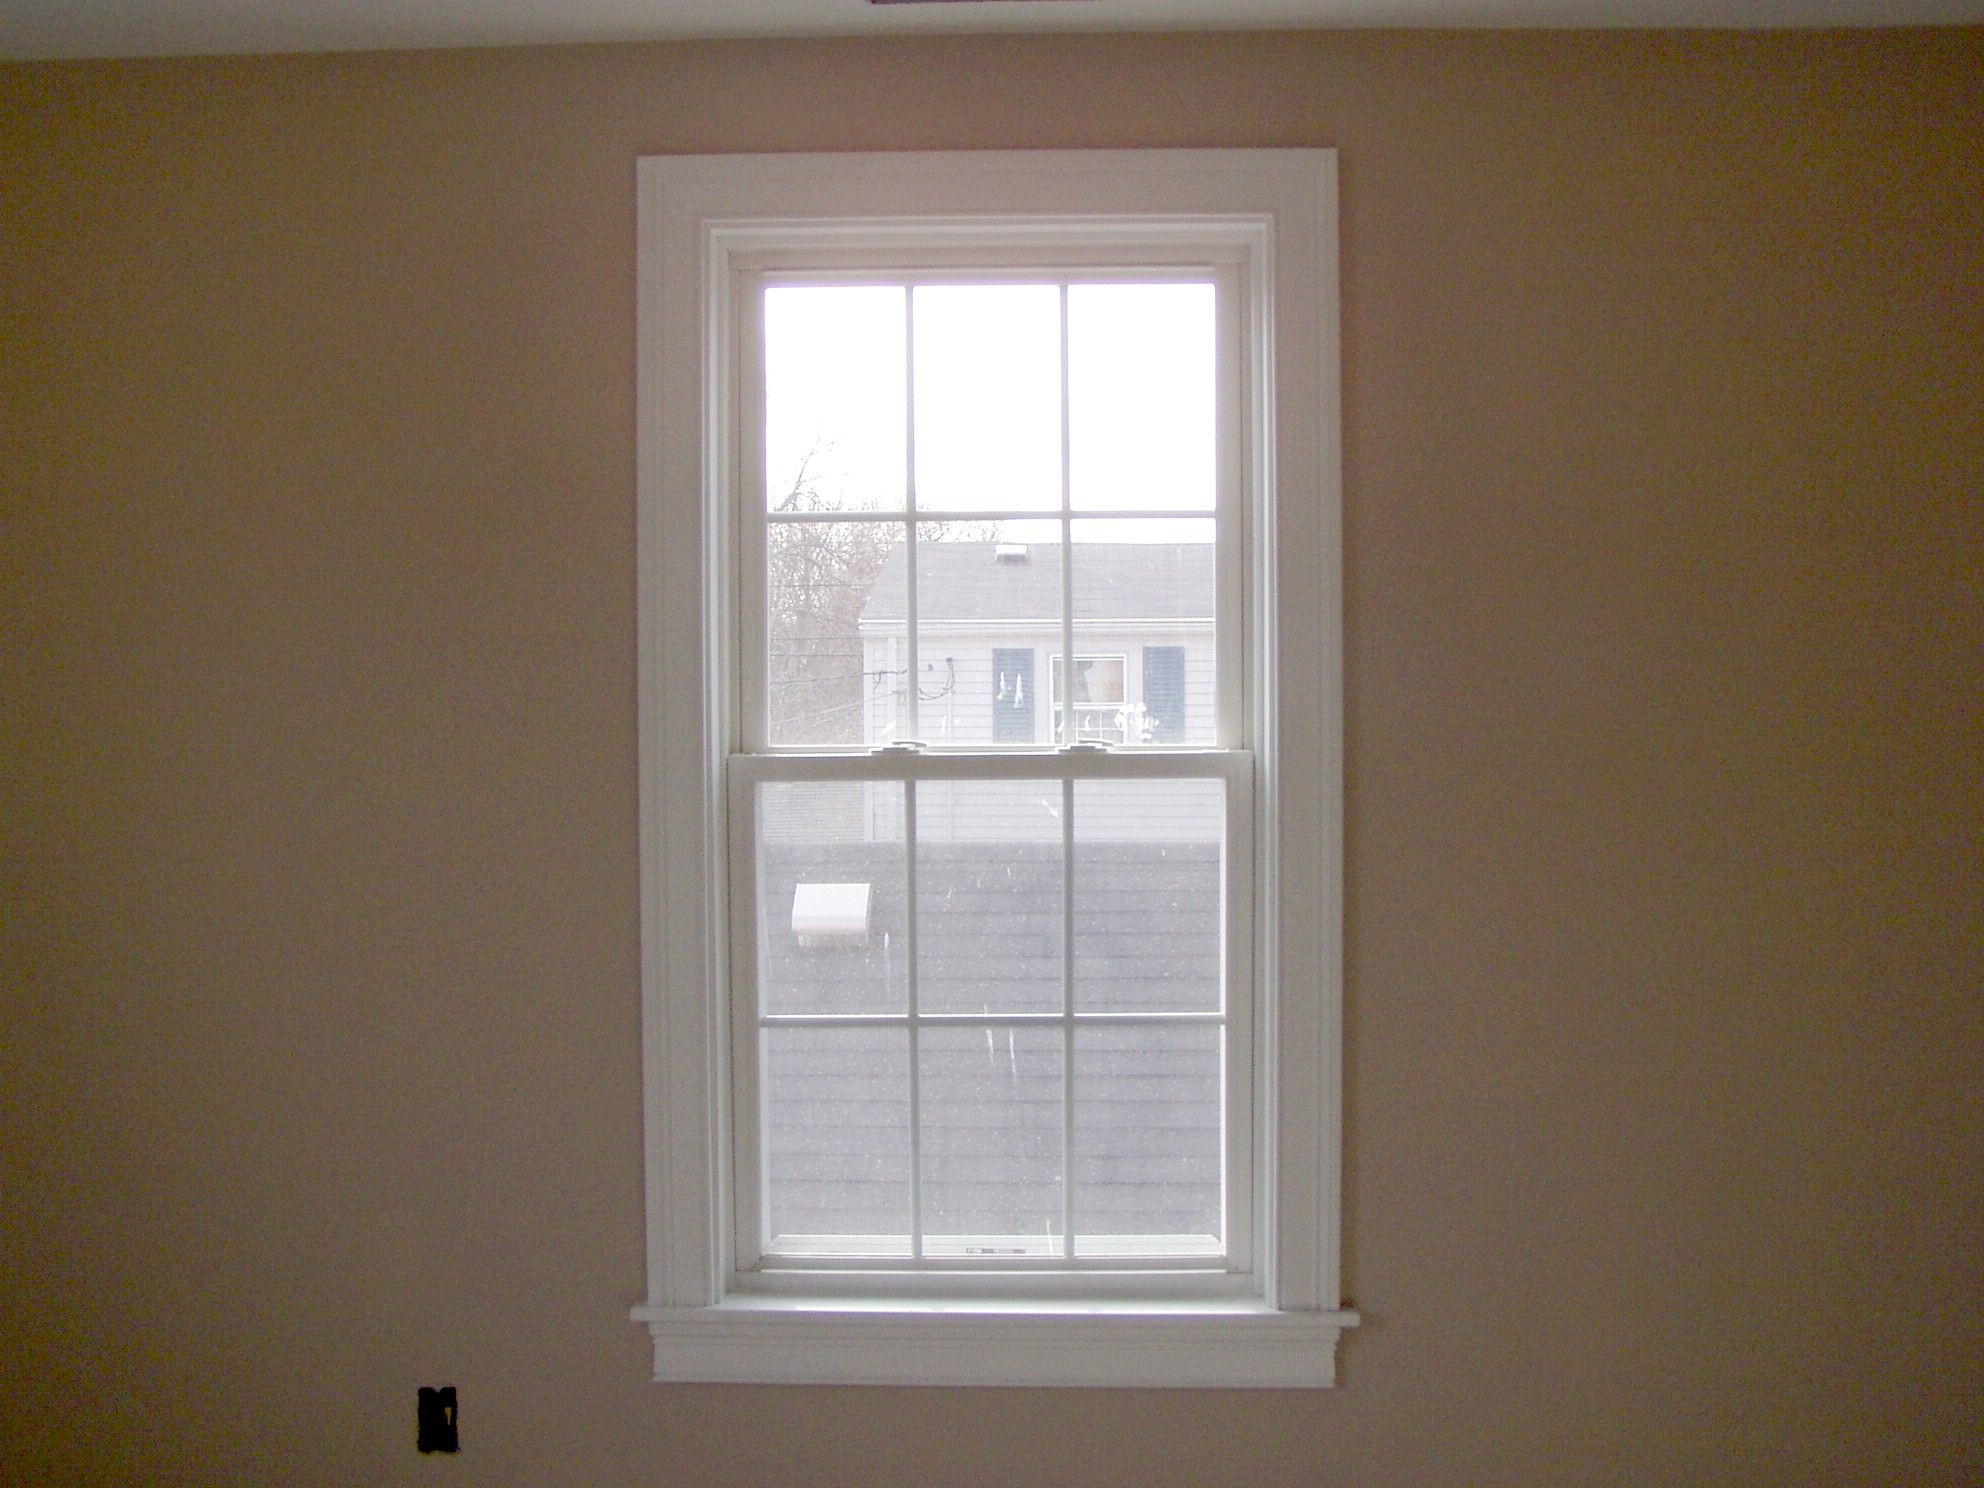 New construction door trim paint and window trim master for Exterior window trim design